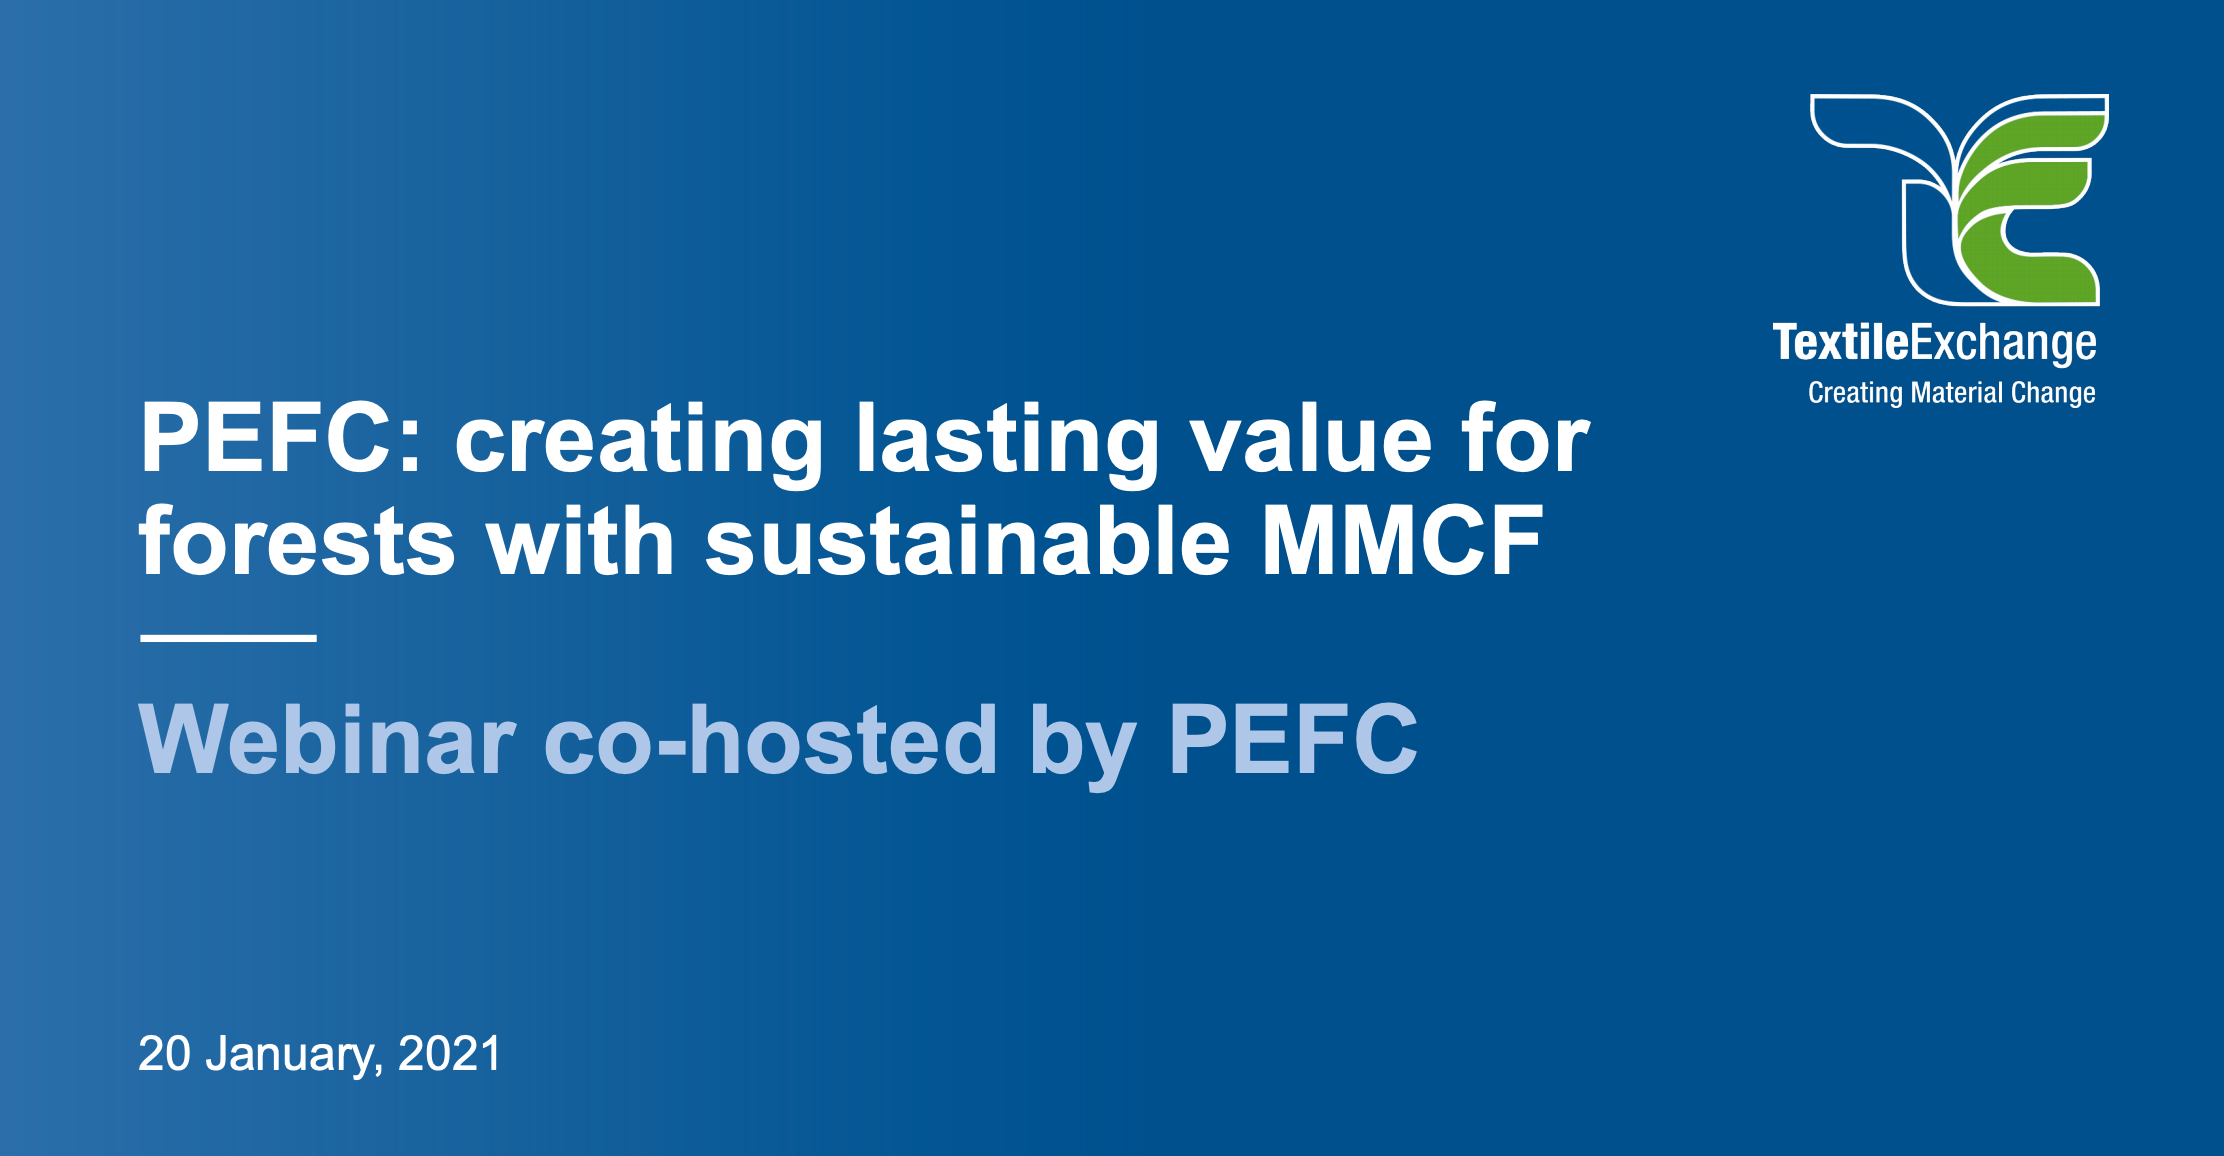 PEFC: CREATING LASTING VALUE FOR FORESTS WITH SUSTAINABLE MMCF